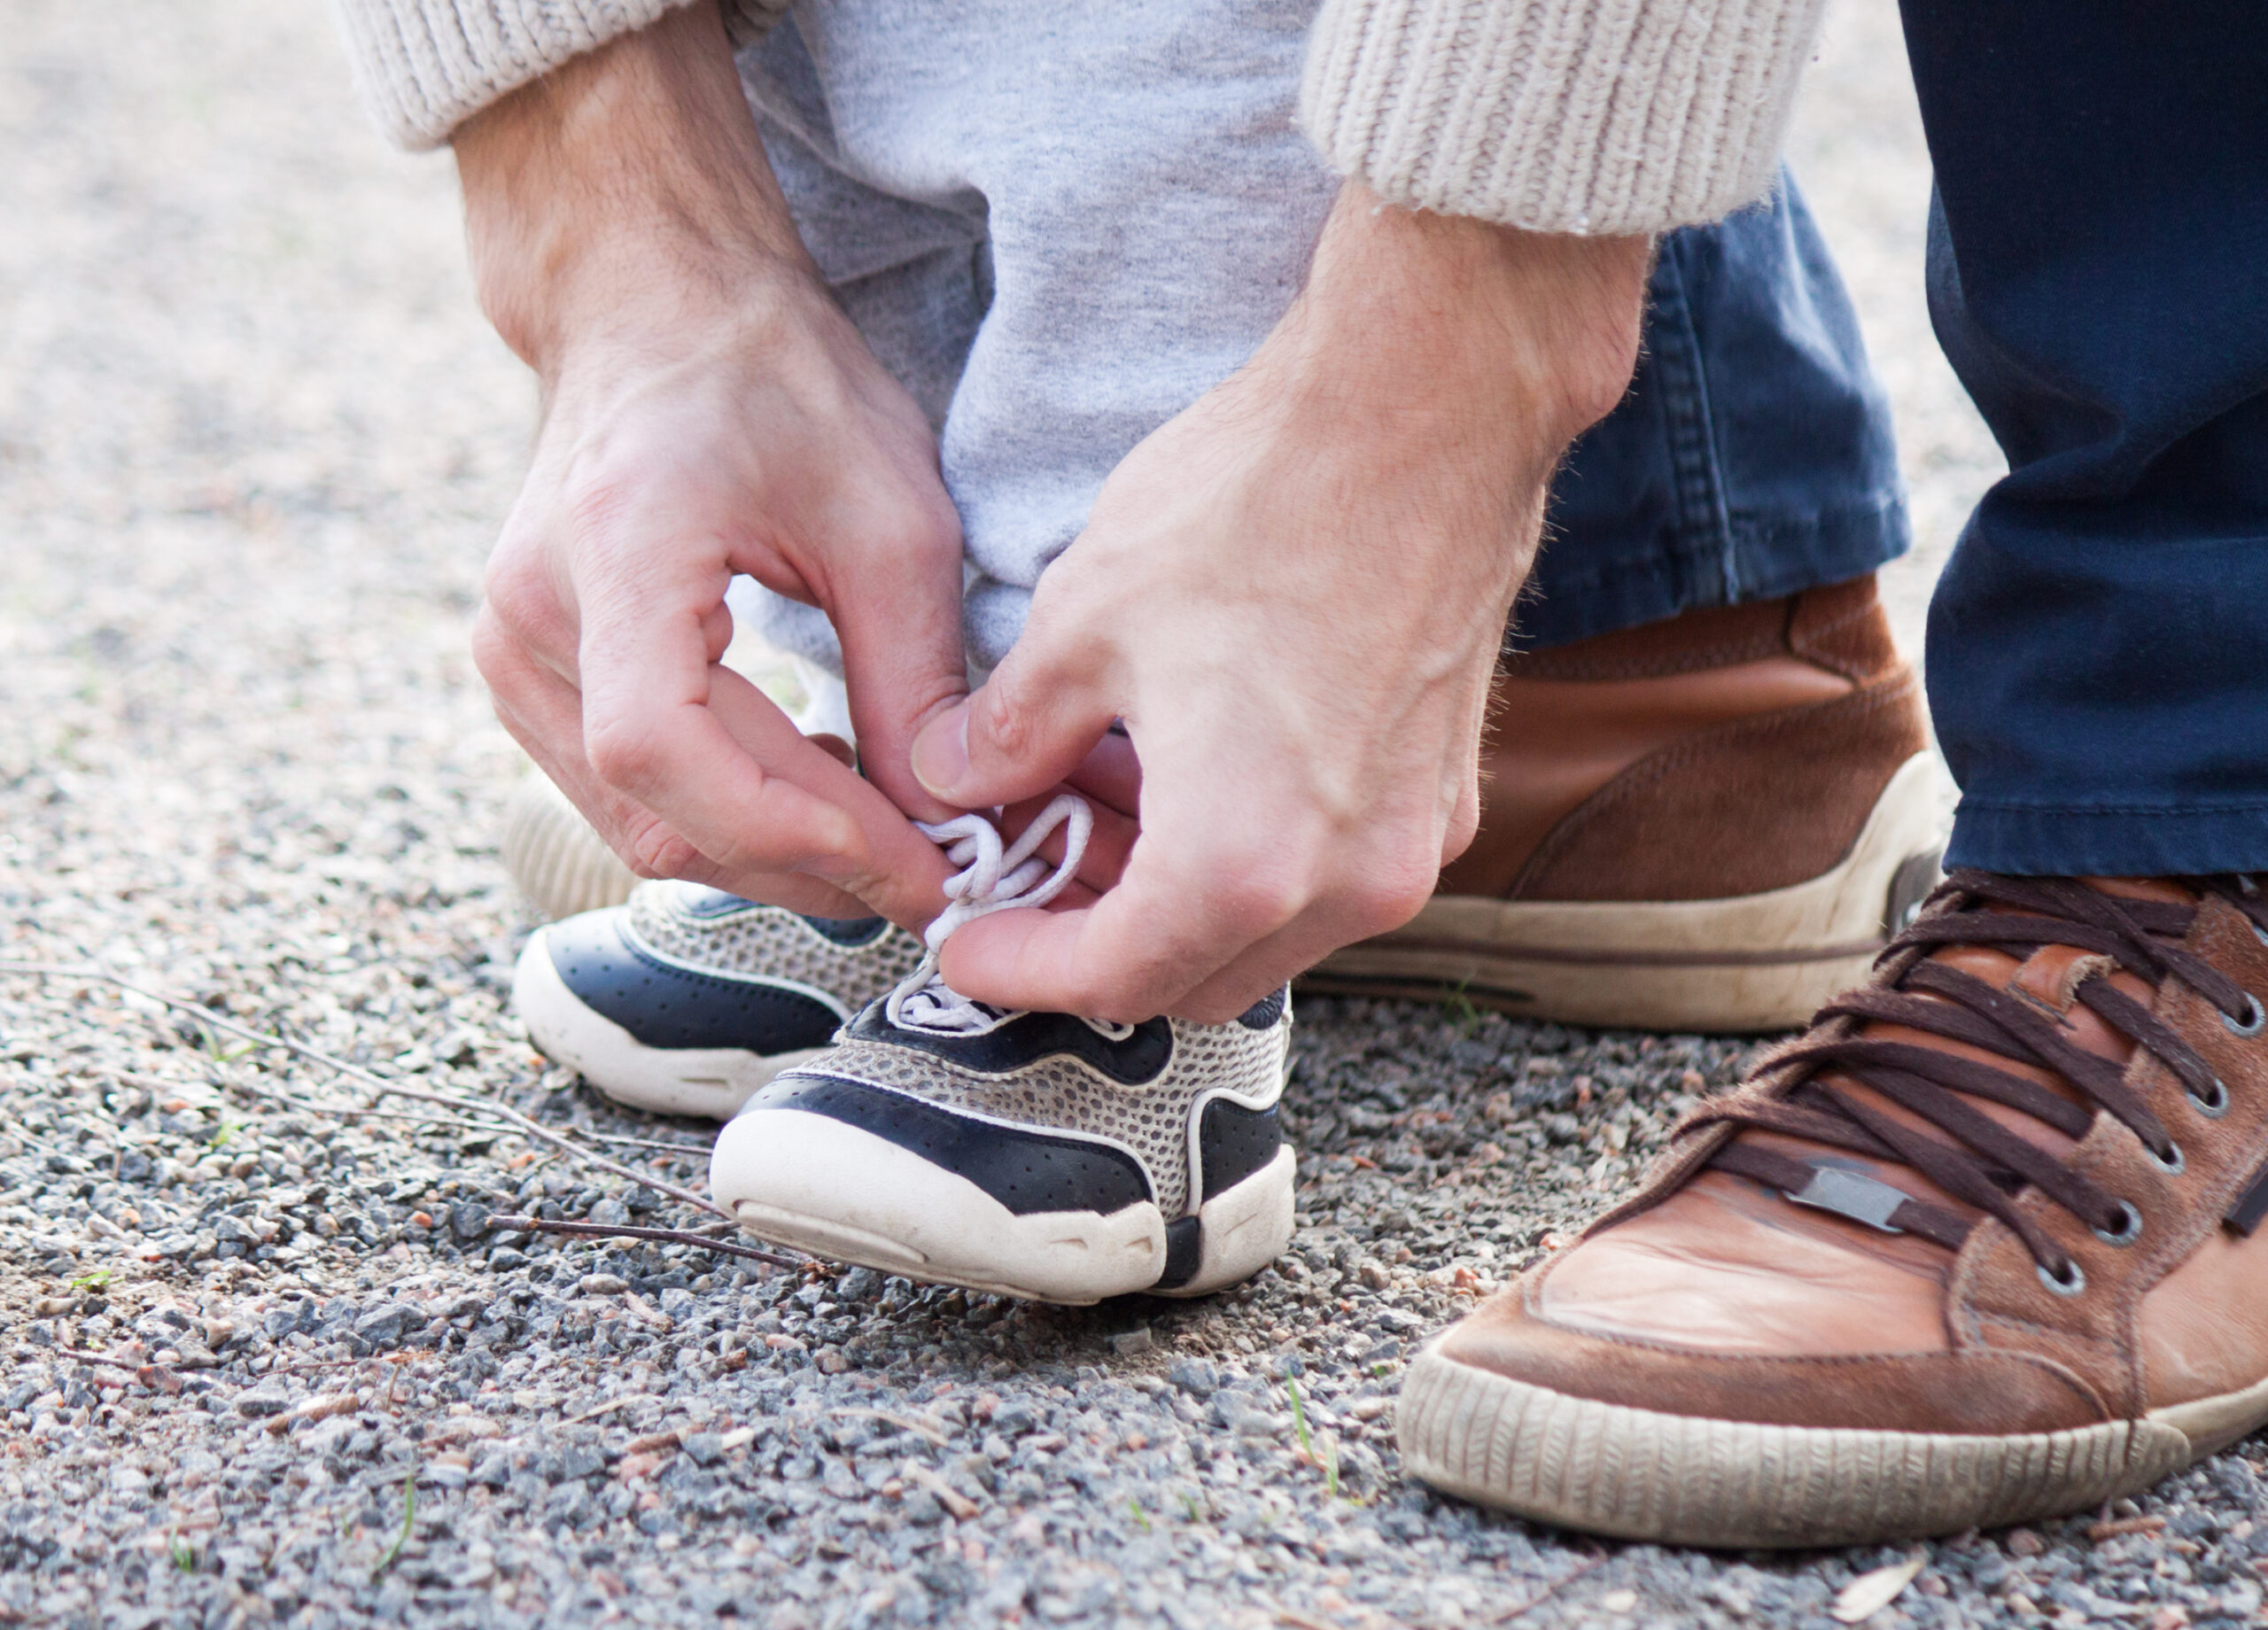 Dad-tying-childs-shoe-lace--scaled (1).jpg